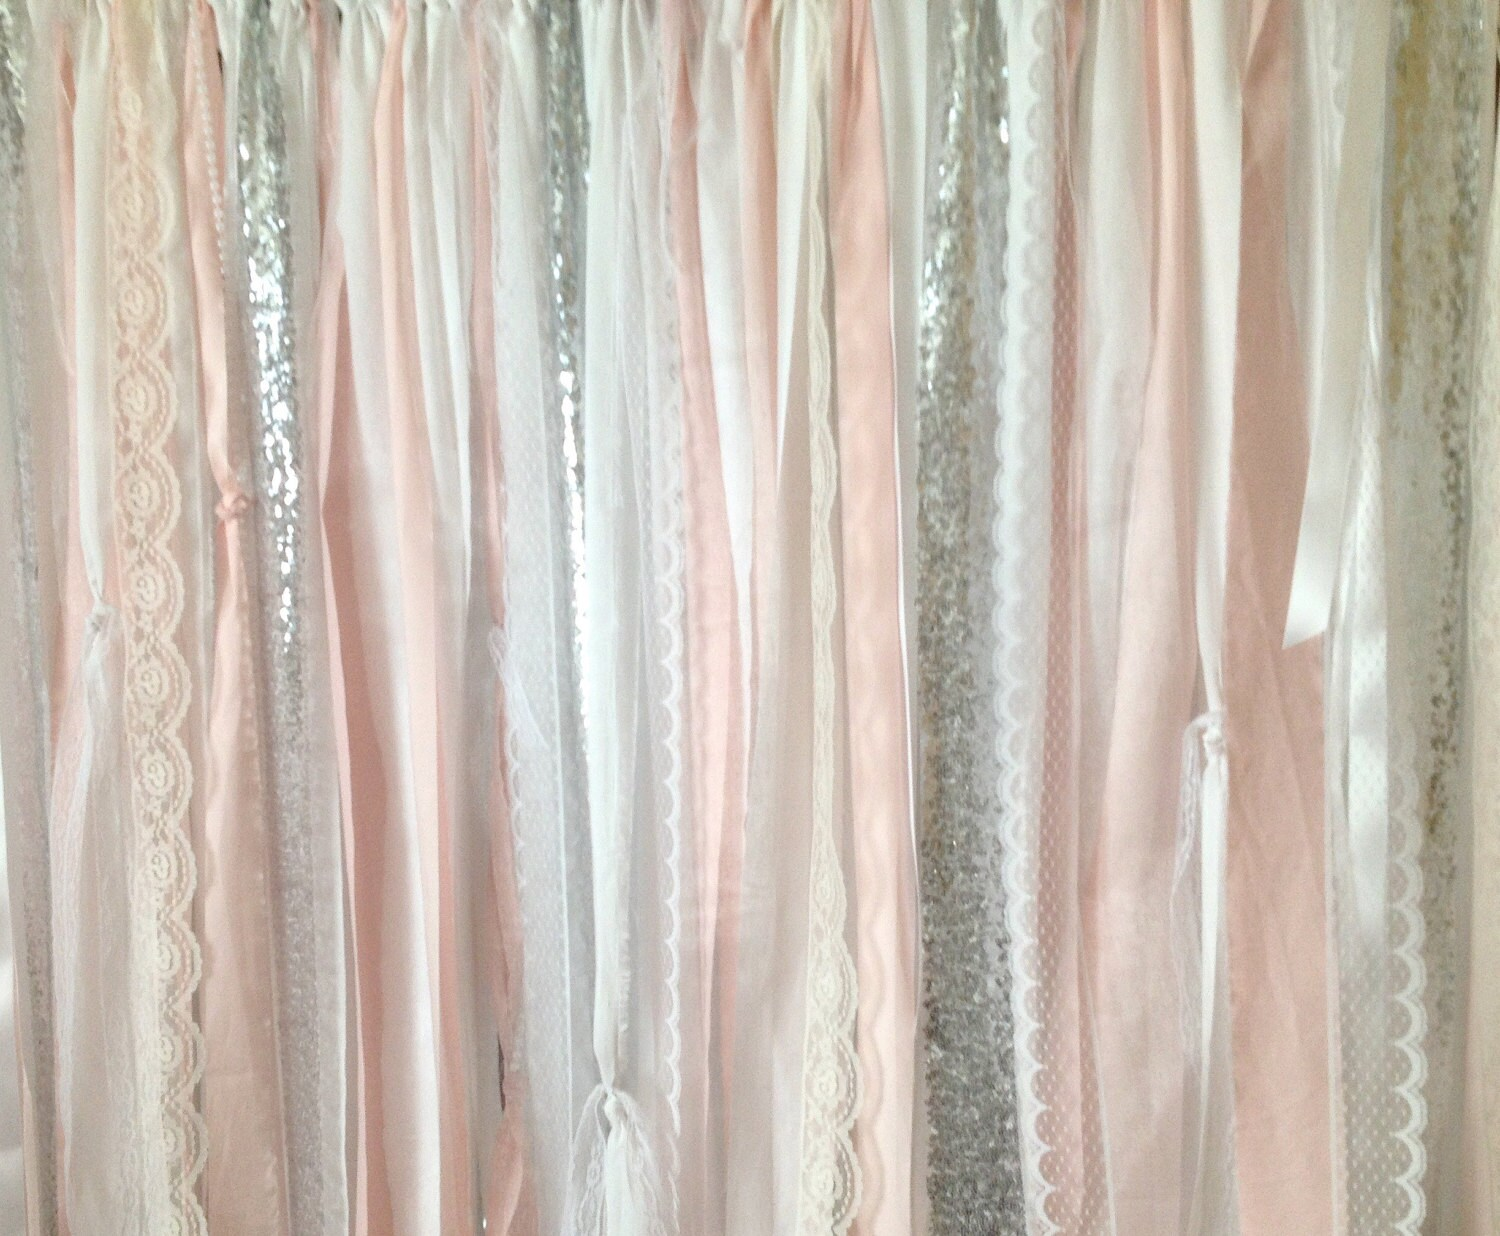 Pink Sequin Curtains Blush Silver Sequin Curtains Fabric Ribbon Garland Nursery Pink White Ivory Photo Prop Curtain Wedding Shower Cakesmash Party